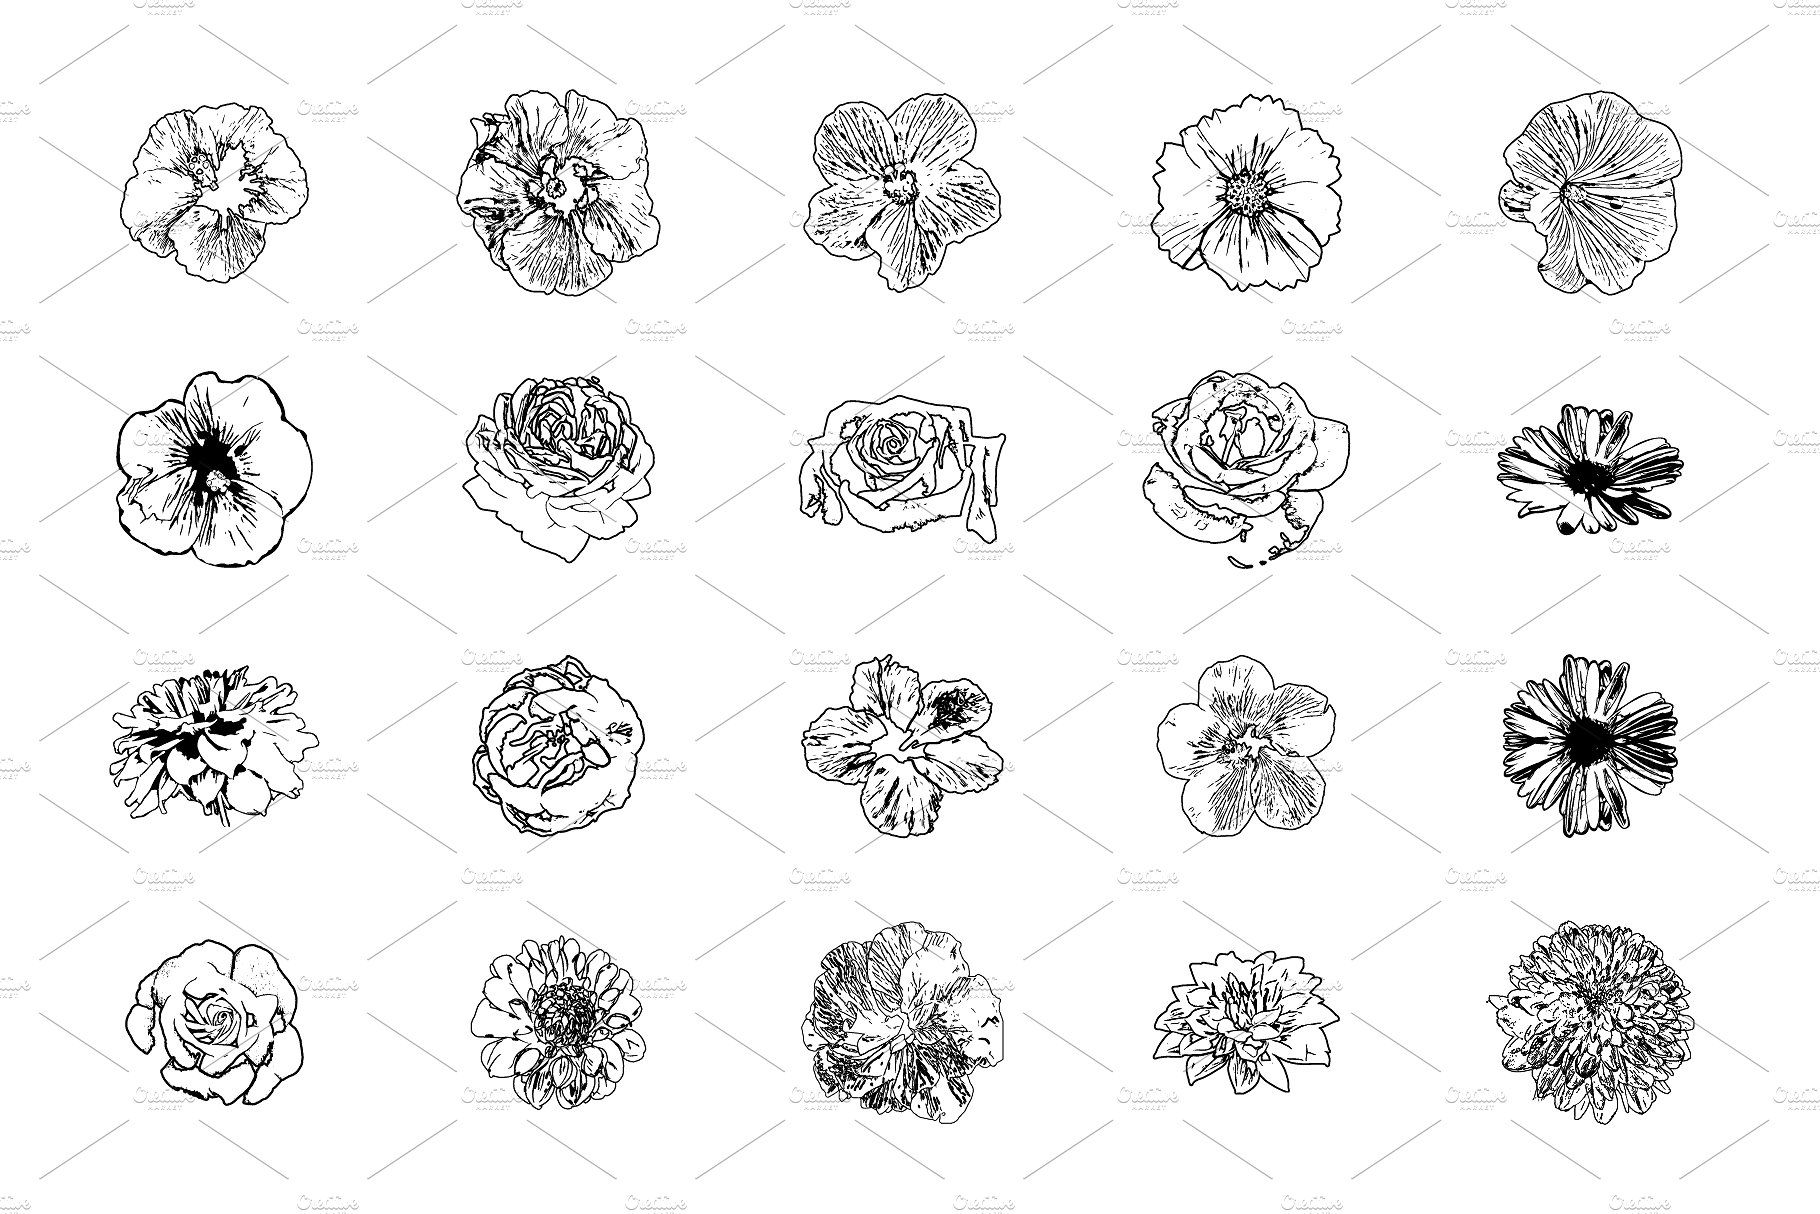 Flower silhouette illustrations Flower silhouette